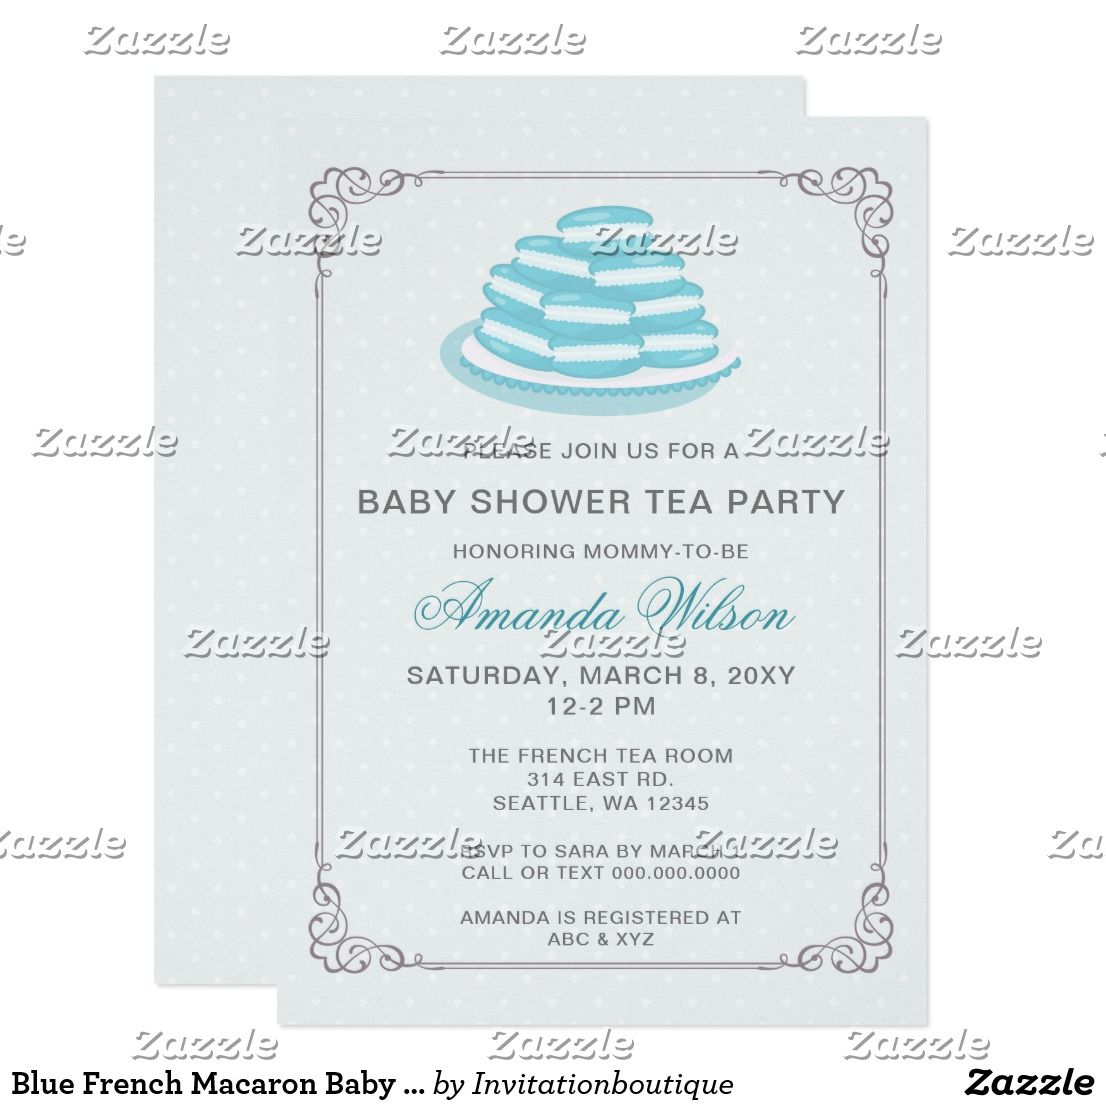 Blue French Macaron Baby Shower Tea Party Invites | baby shower ...